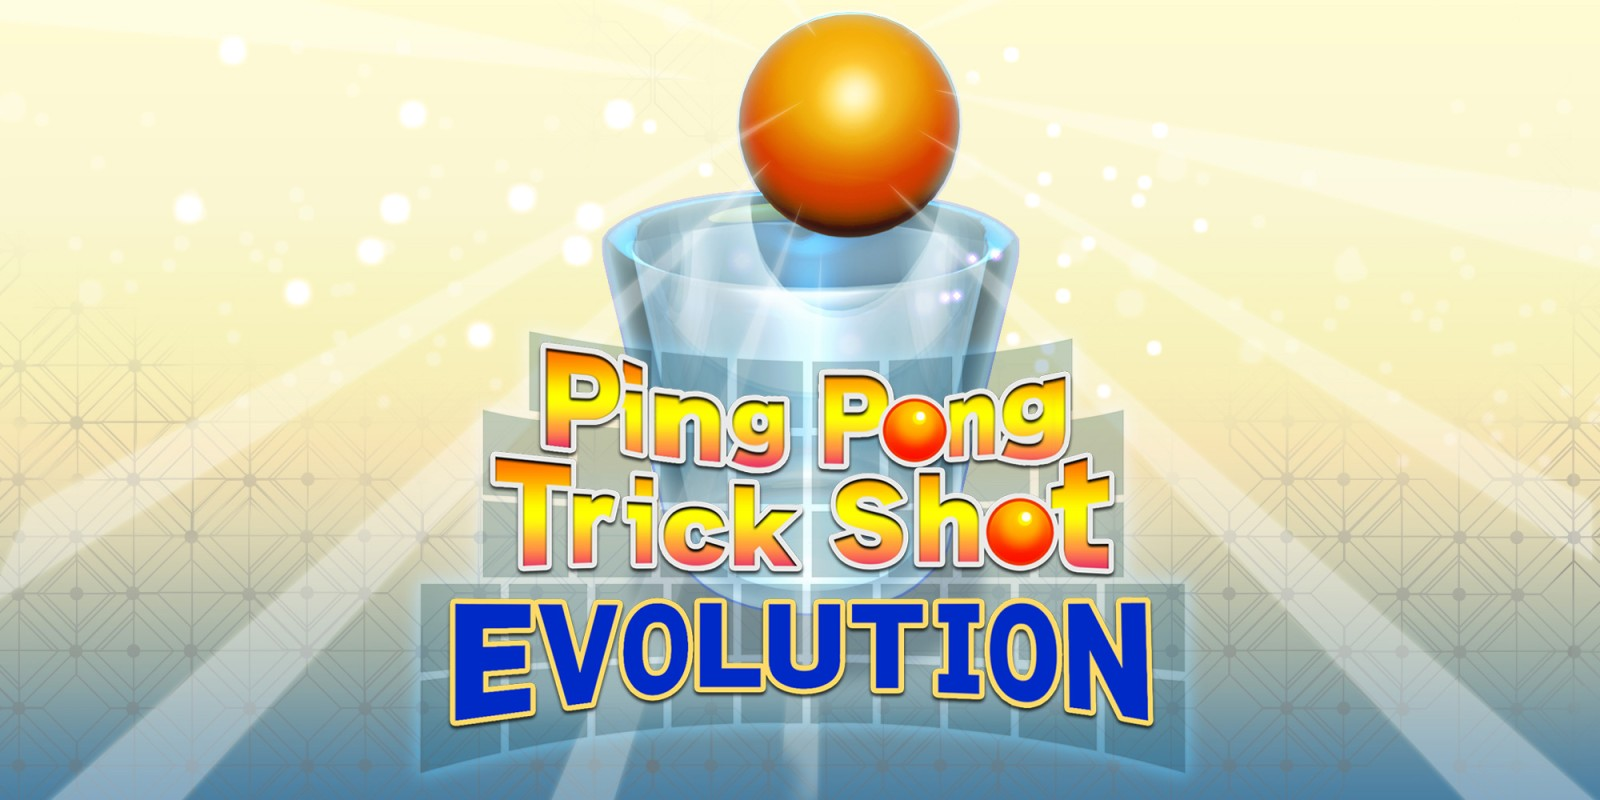 Ping Pong Trick Shot EVOLUTION